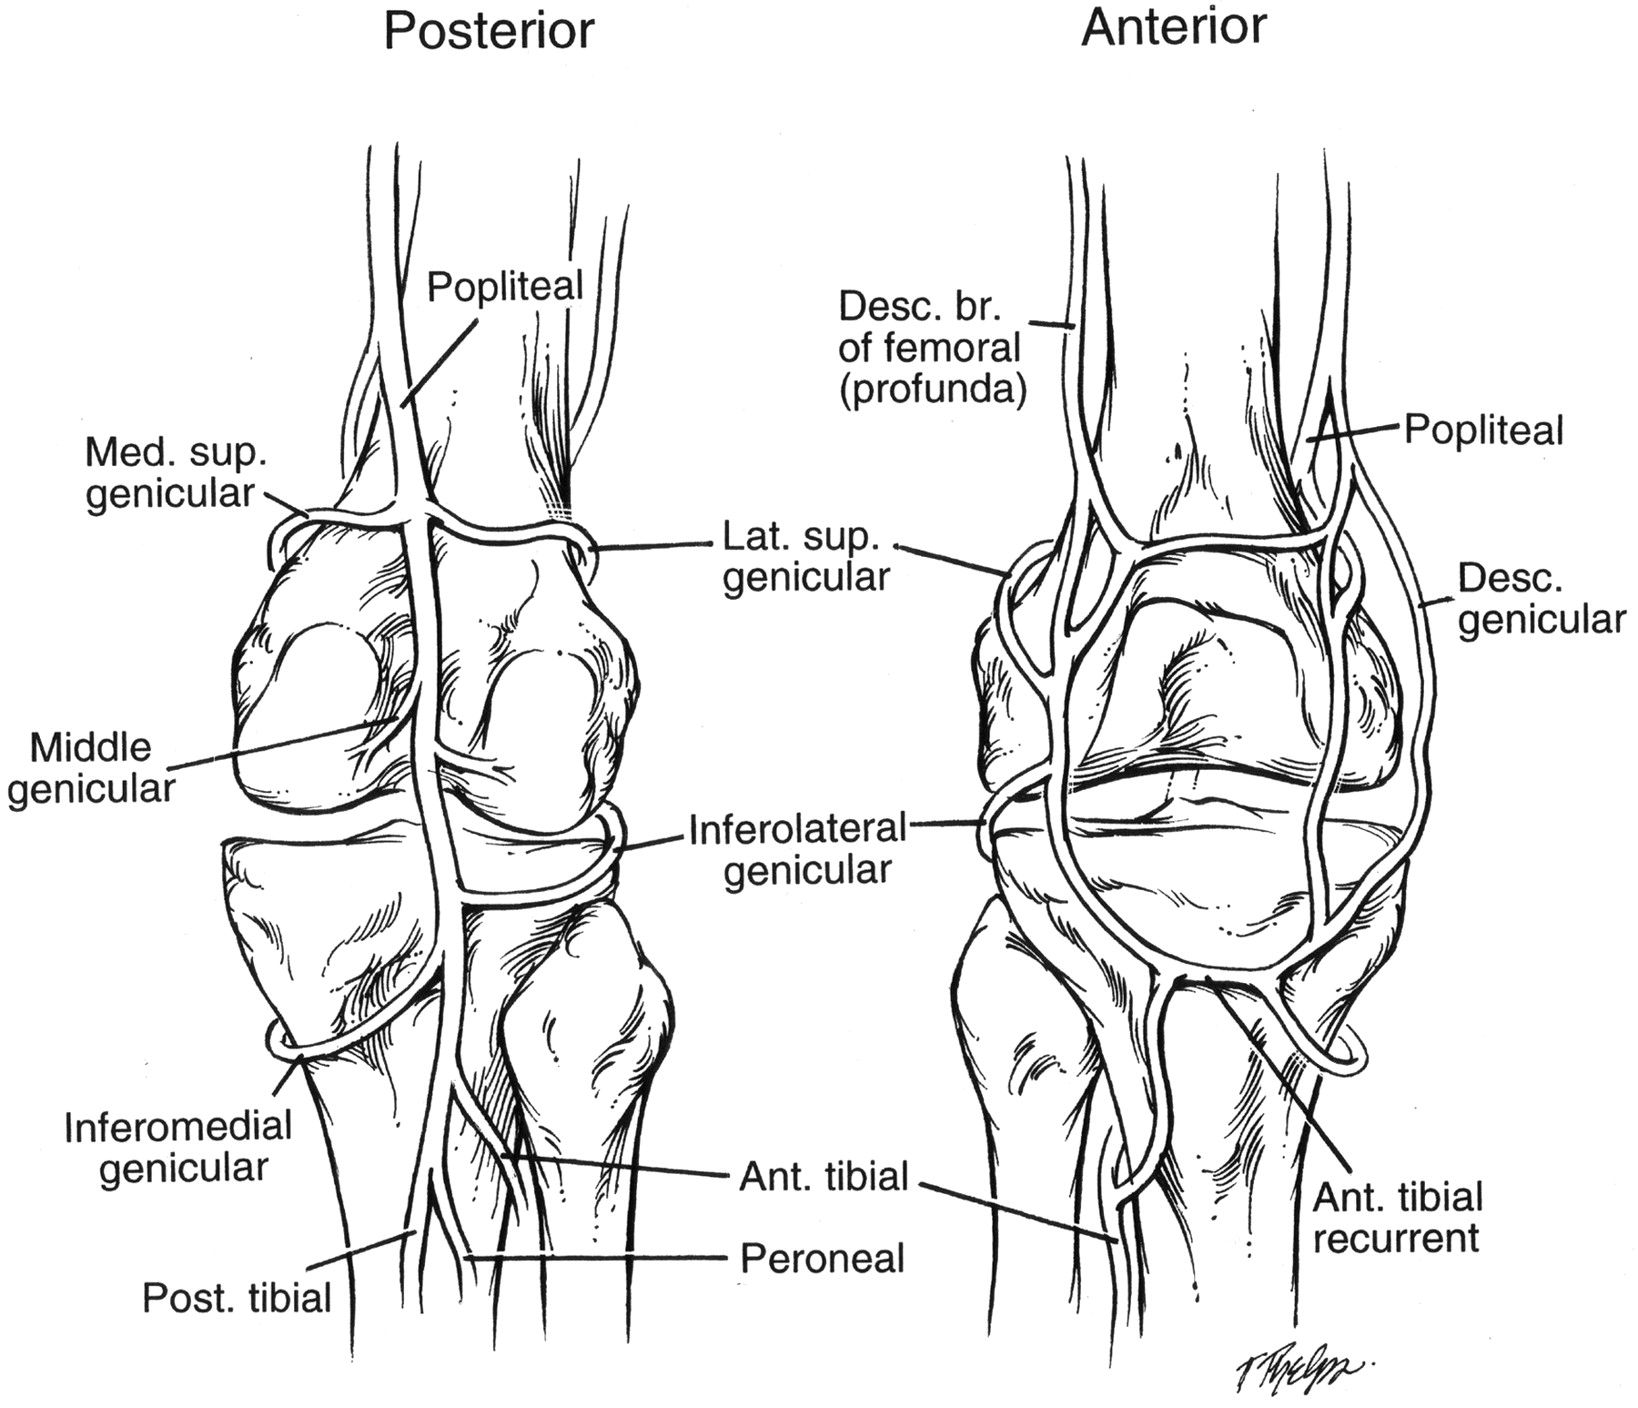 Location Of Popliteal Vein And Branches Thereof